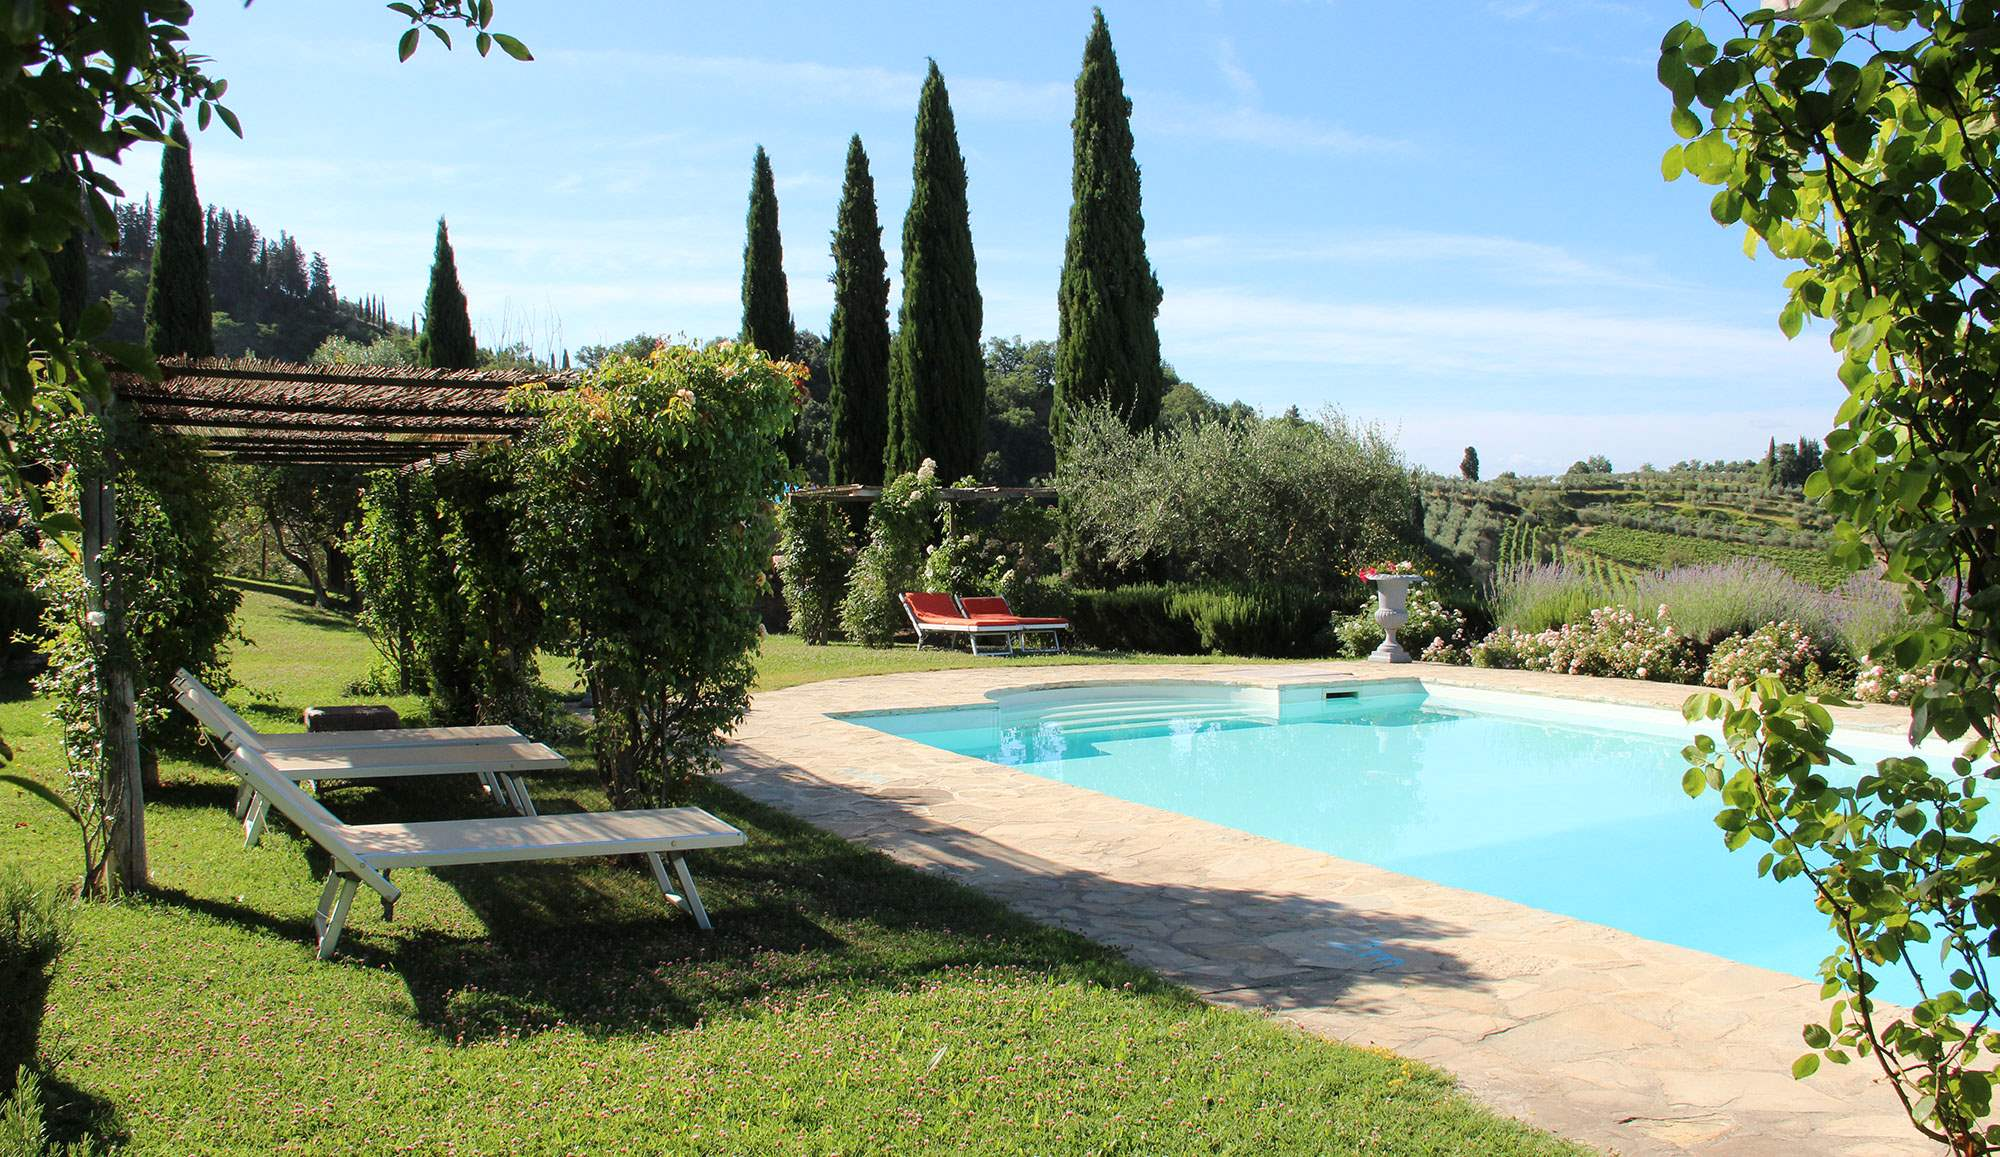 Villa Capanna, 3 bedroom villa in Chianti & Countryside, Tuscany Photo #9